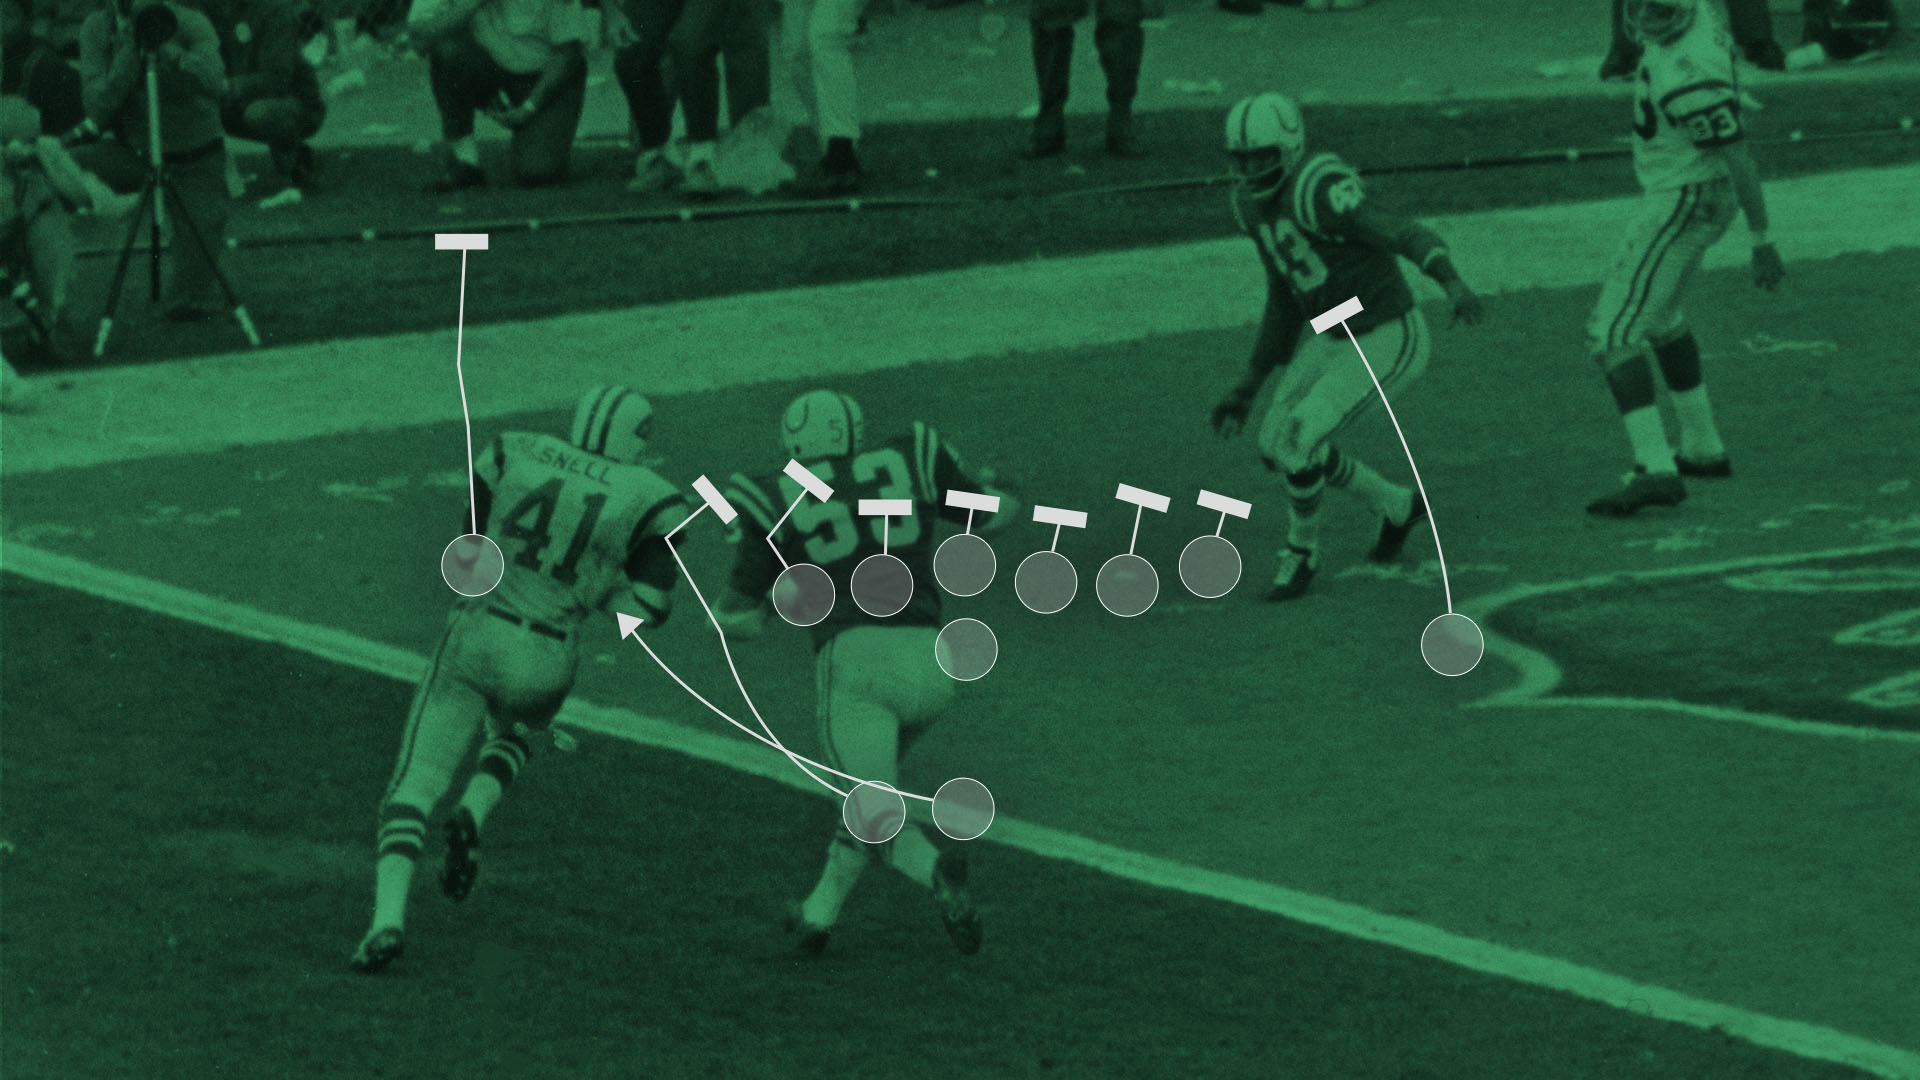 '19 Straight': How one Jets play fueled a history-altering upset in Super Bowl III